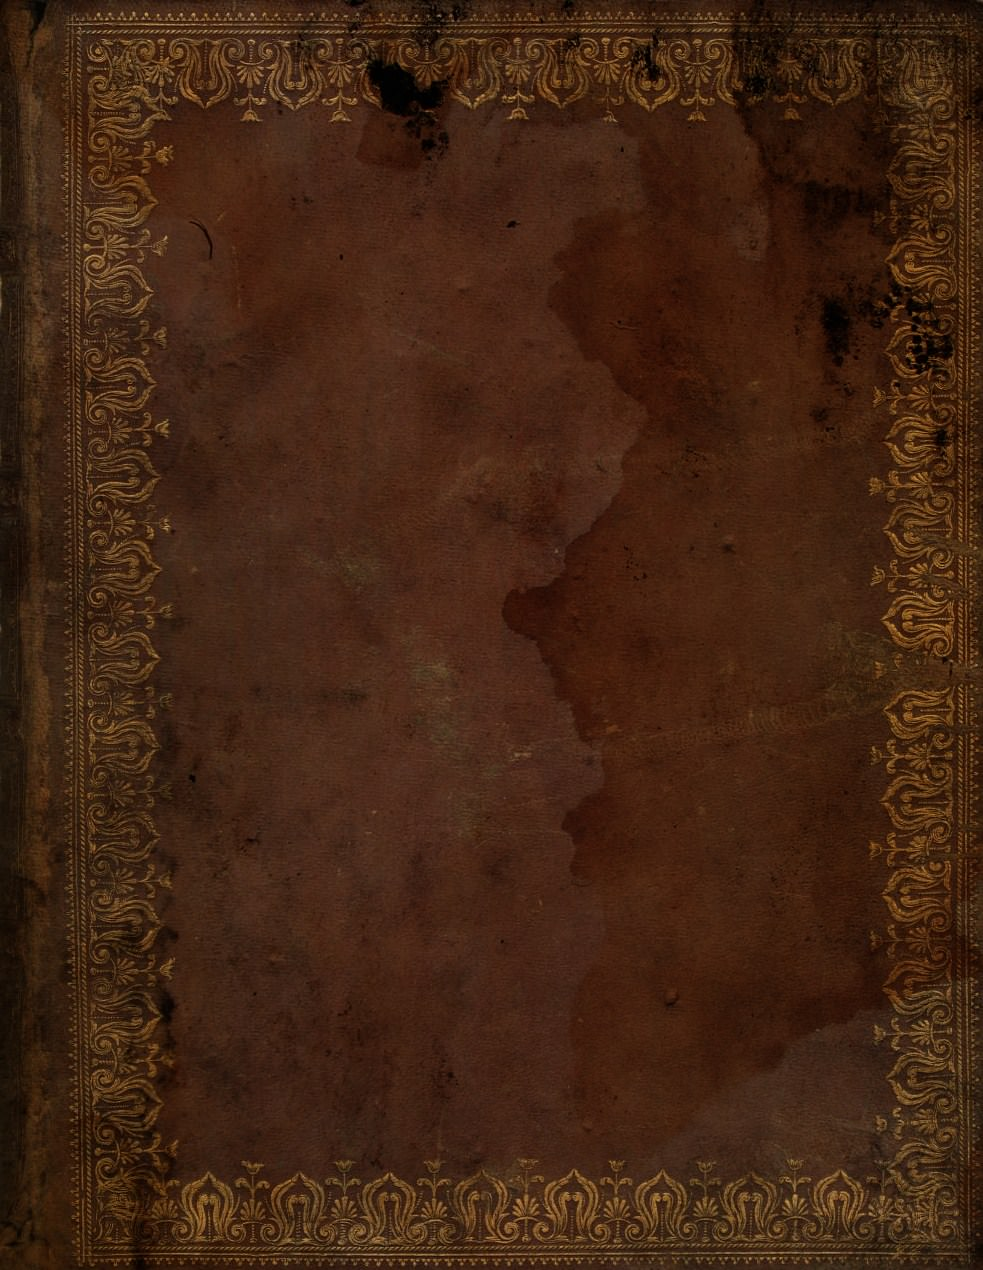 Fantastic Old Book Texture For Download